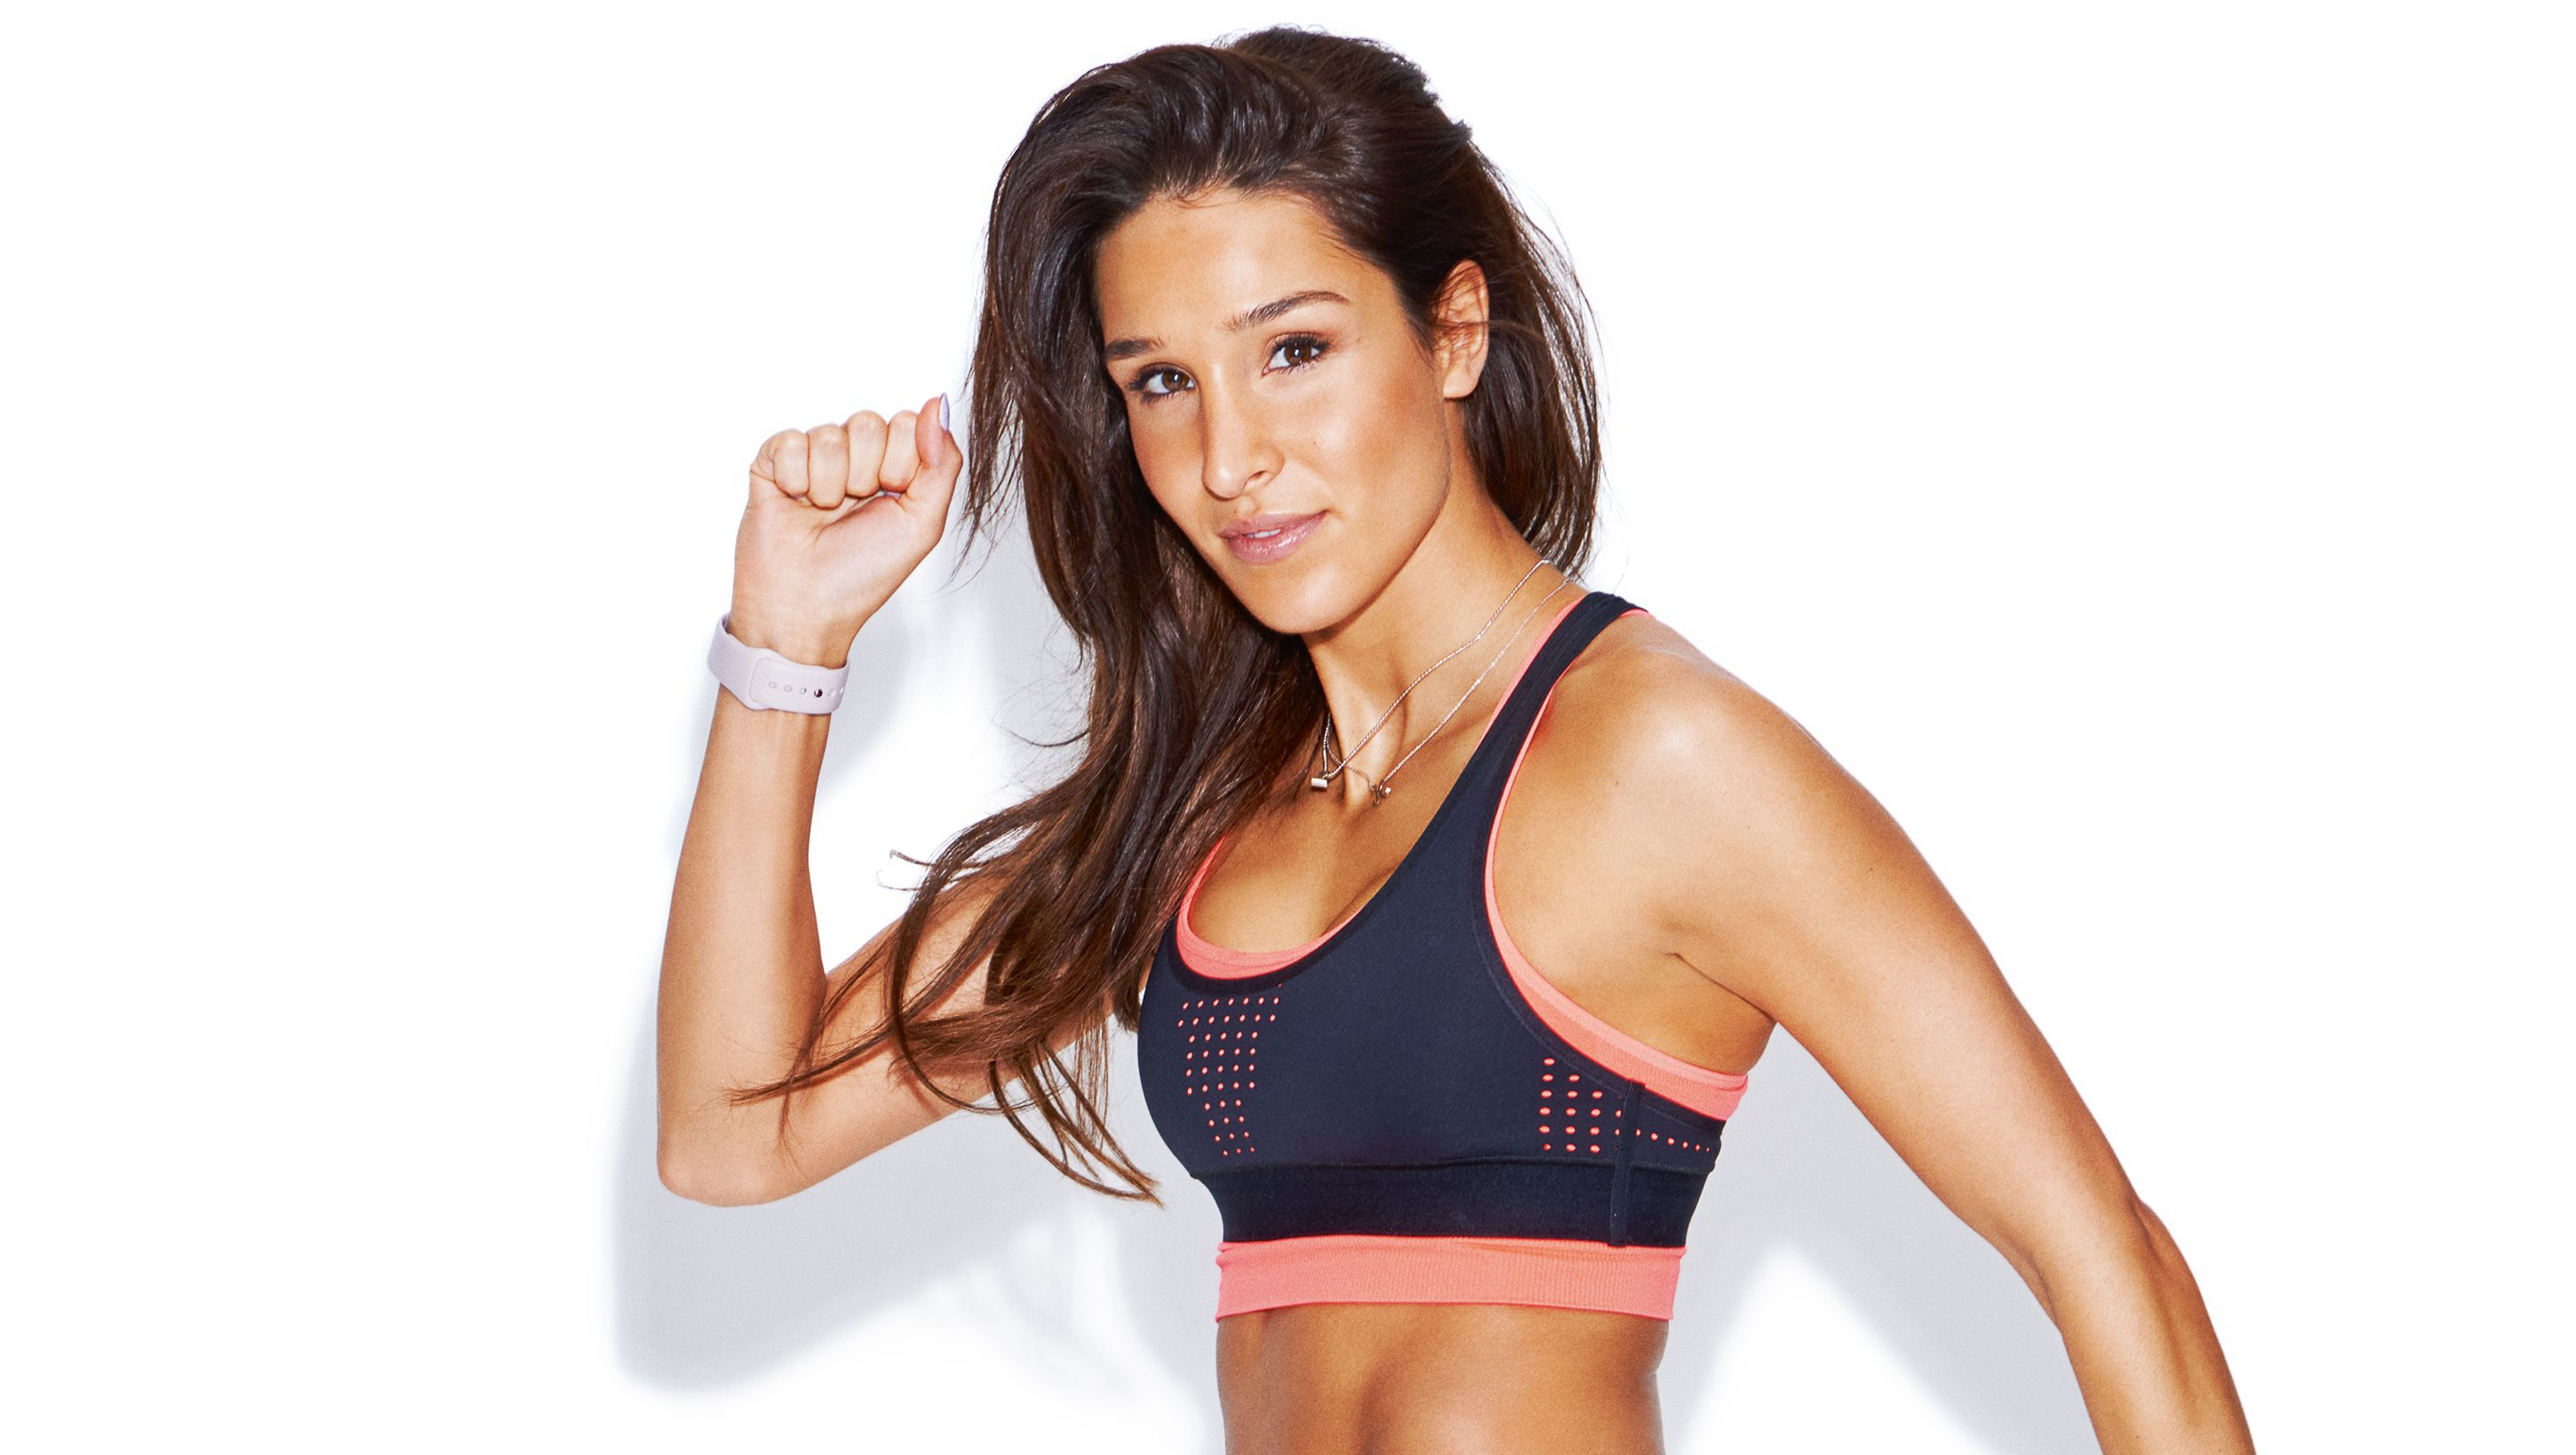 *New Circuits Added* Kayla Itsines Workouts: Your 4-Week Beginner No-Kit Plan